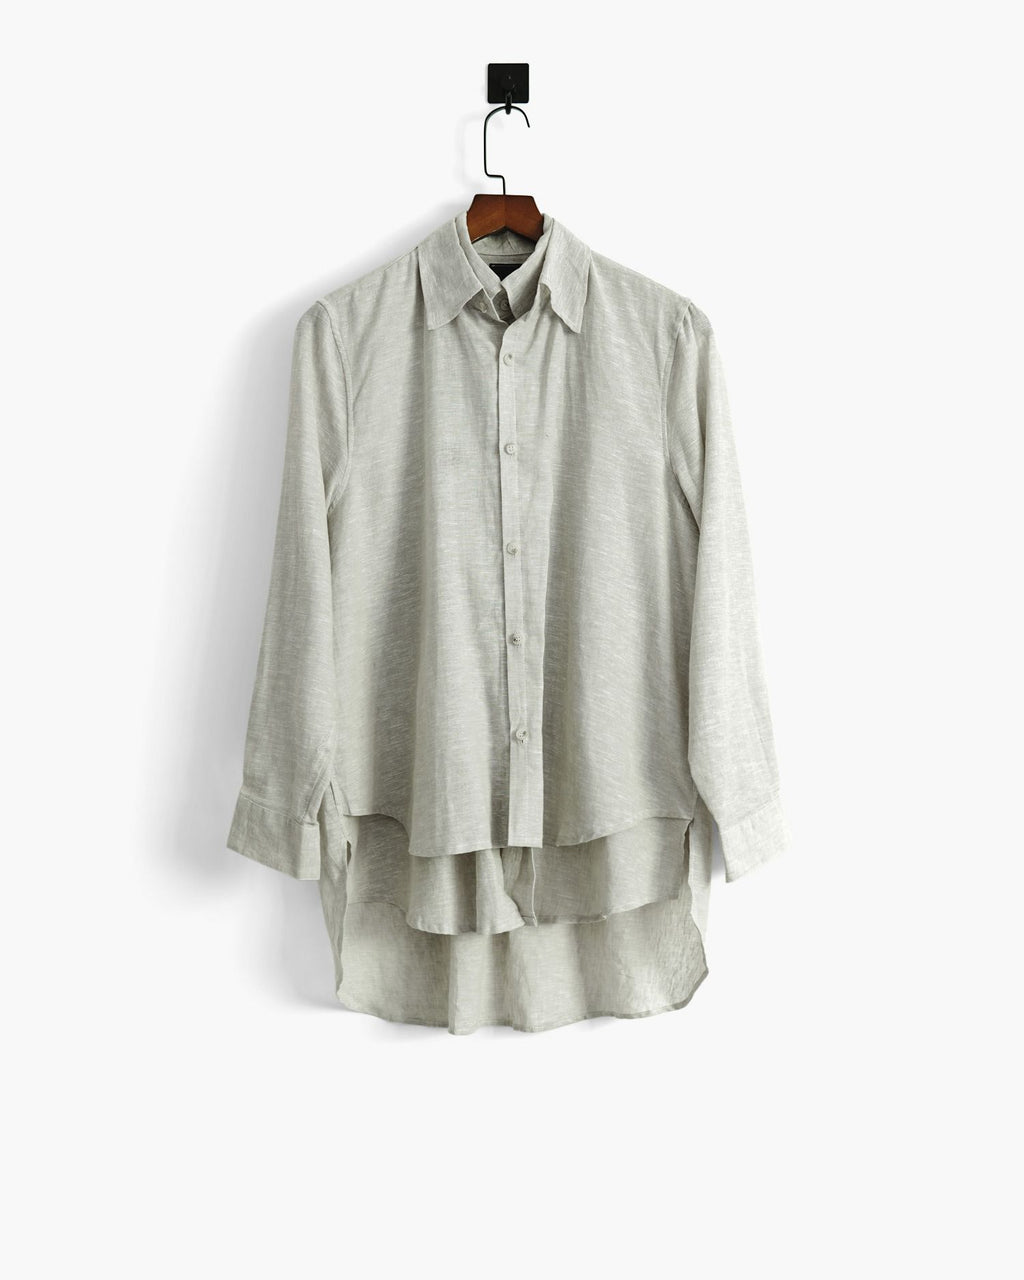 ROSEN Oliver Shirt in Grey Linen Sz 1